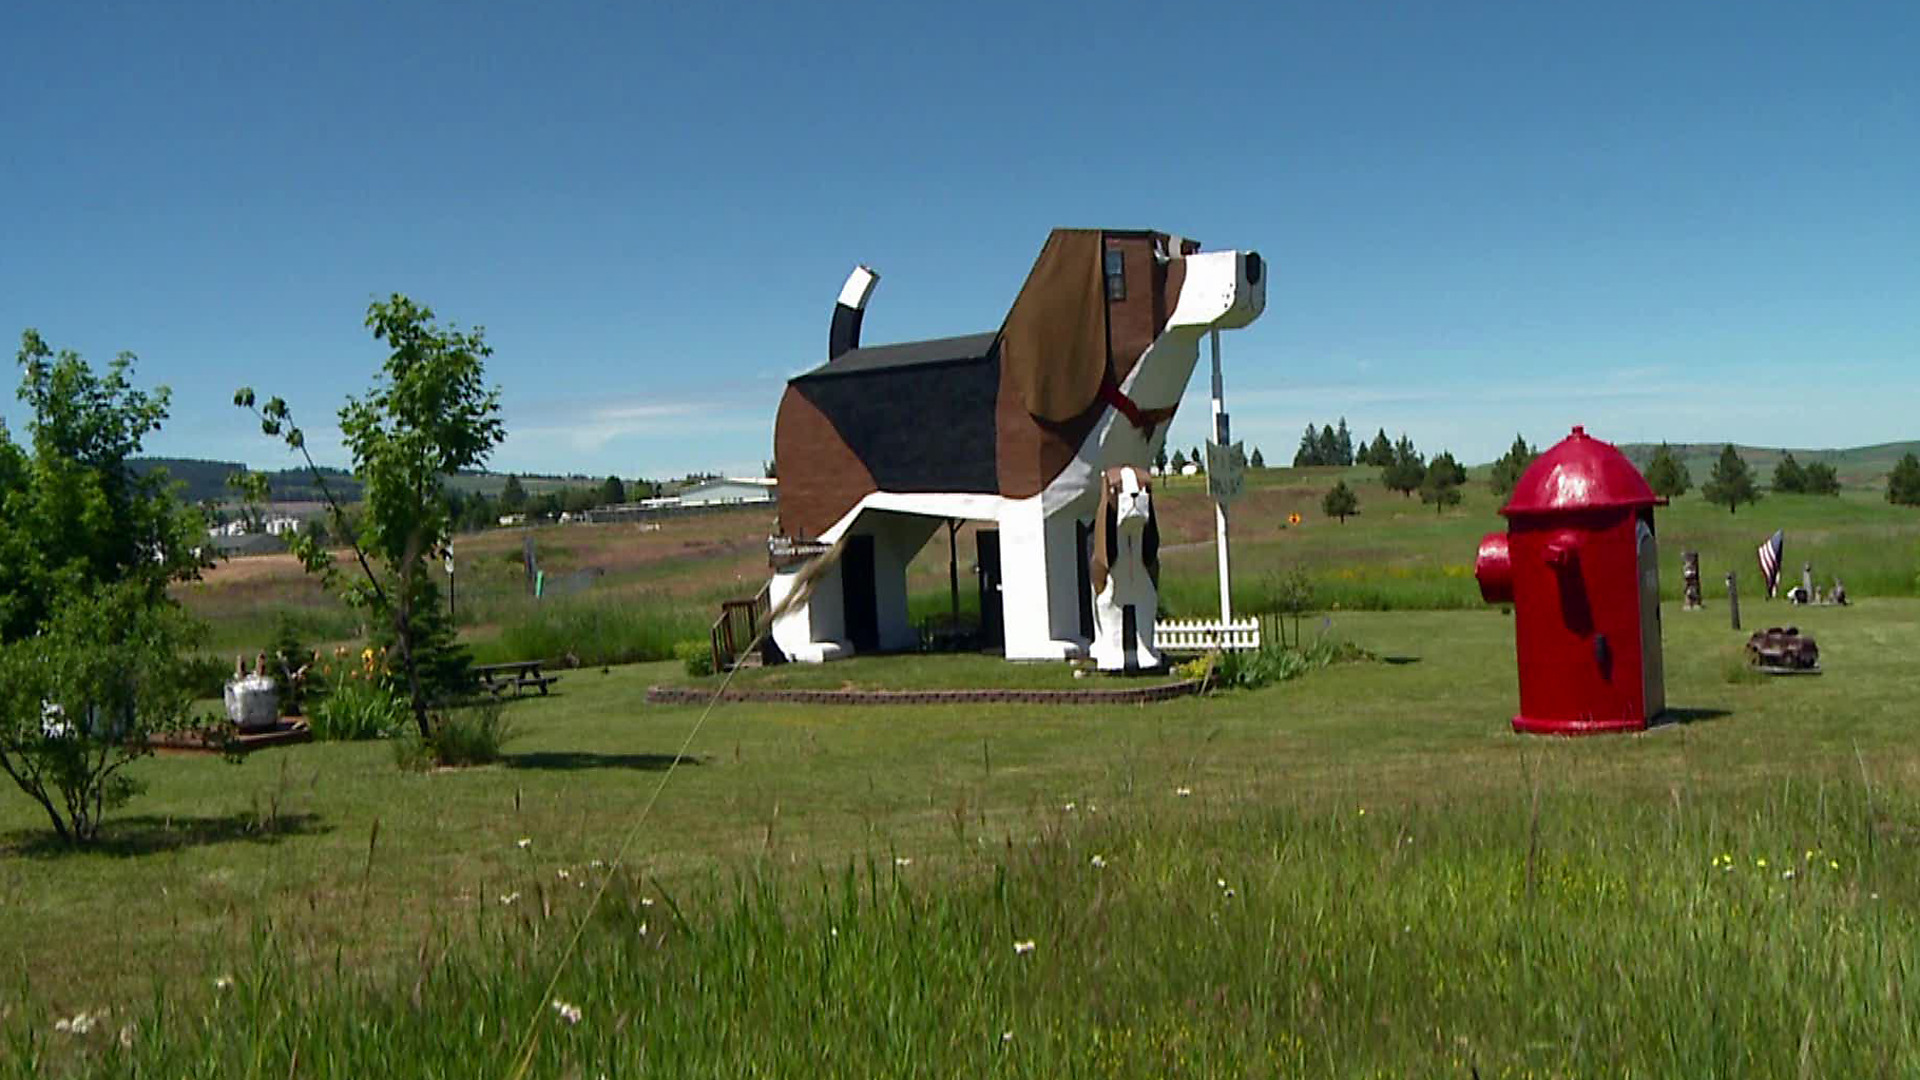 A cabin is built in the shape of a dog.